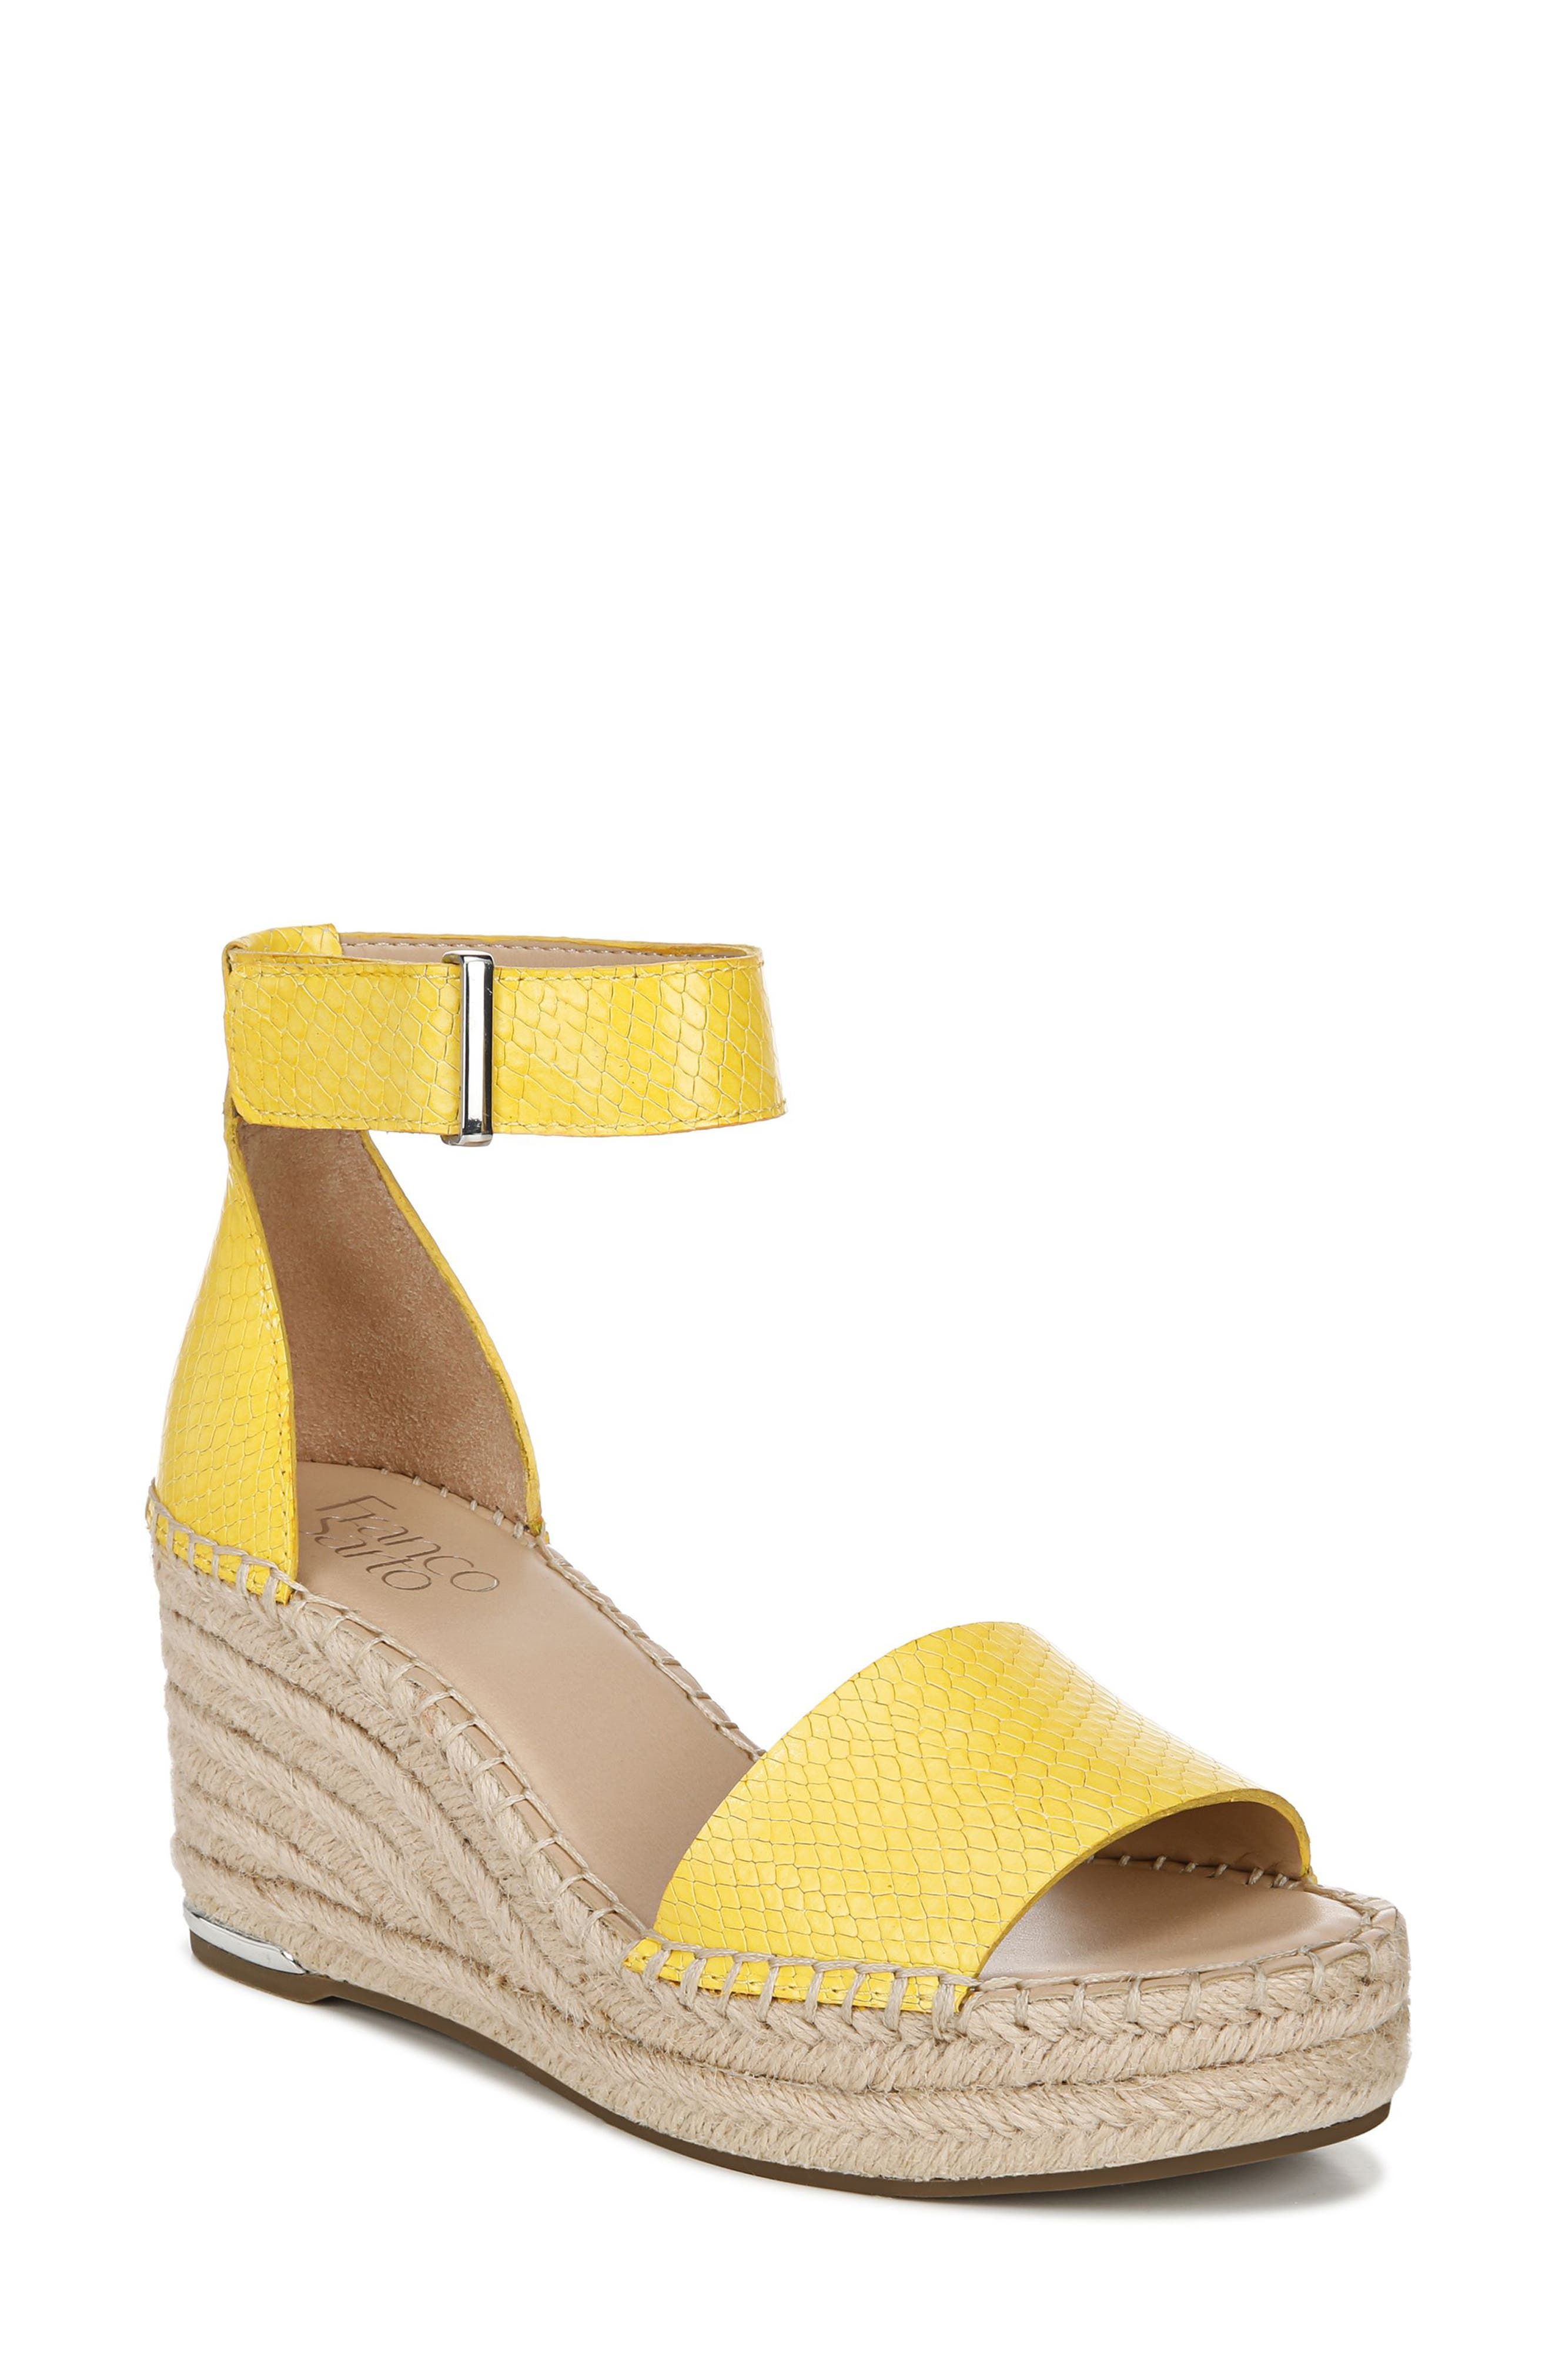 Whether you\\\'re heading for weekend brunch or an outdoor party, put your best foot forward in this espadrille-style wedge sandal. Style Name: Franco Sarto Clemens Espadrille Wedge Sandal (Women). Style Number: 6080323. Available in stores.